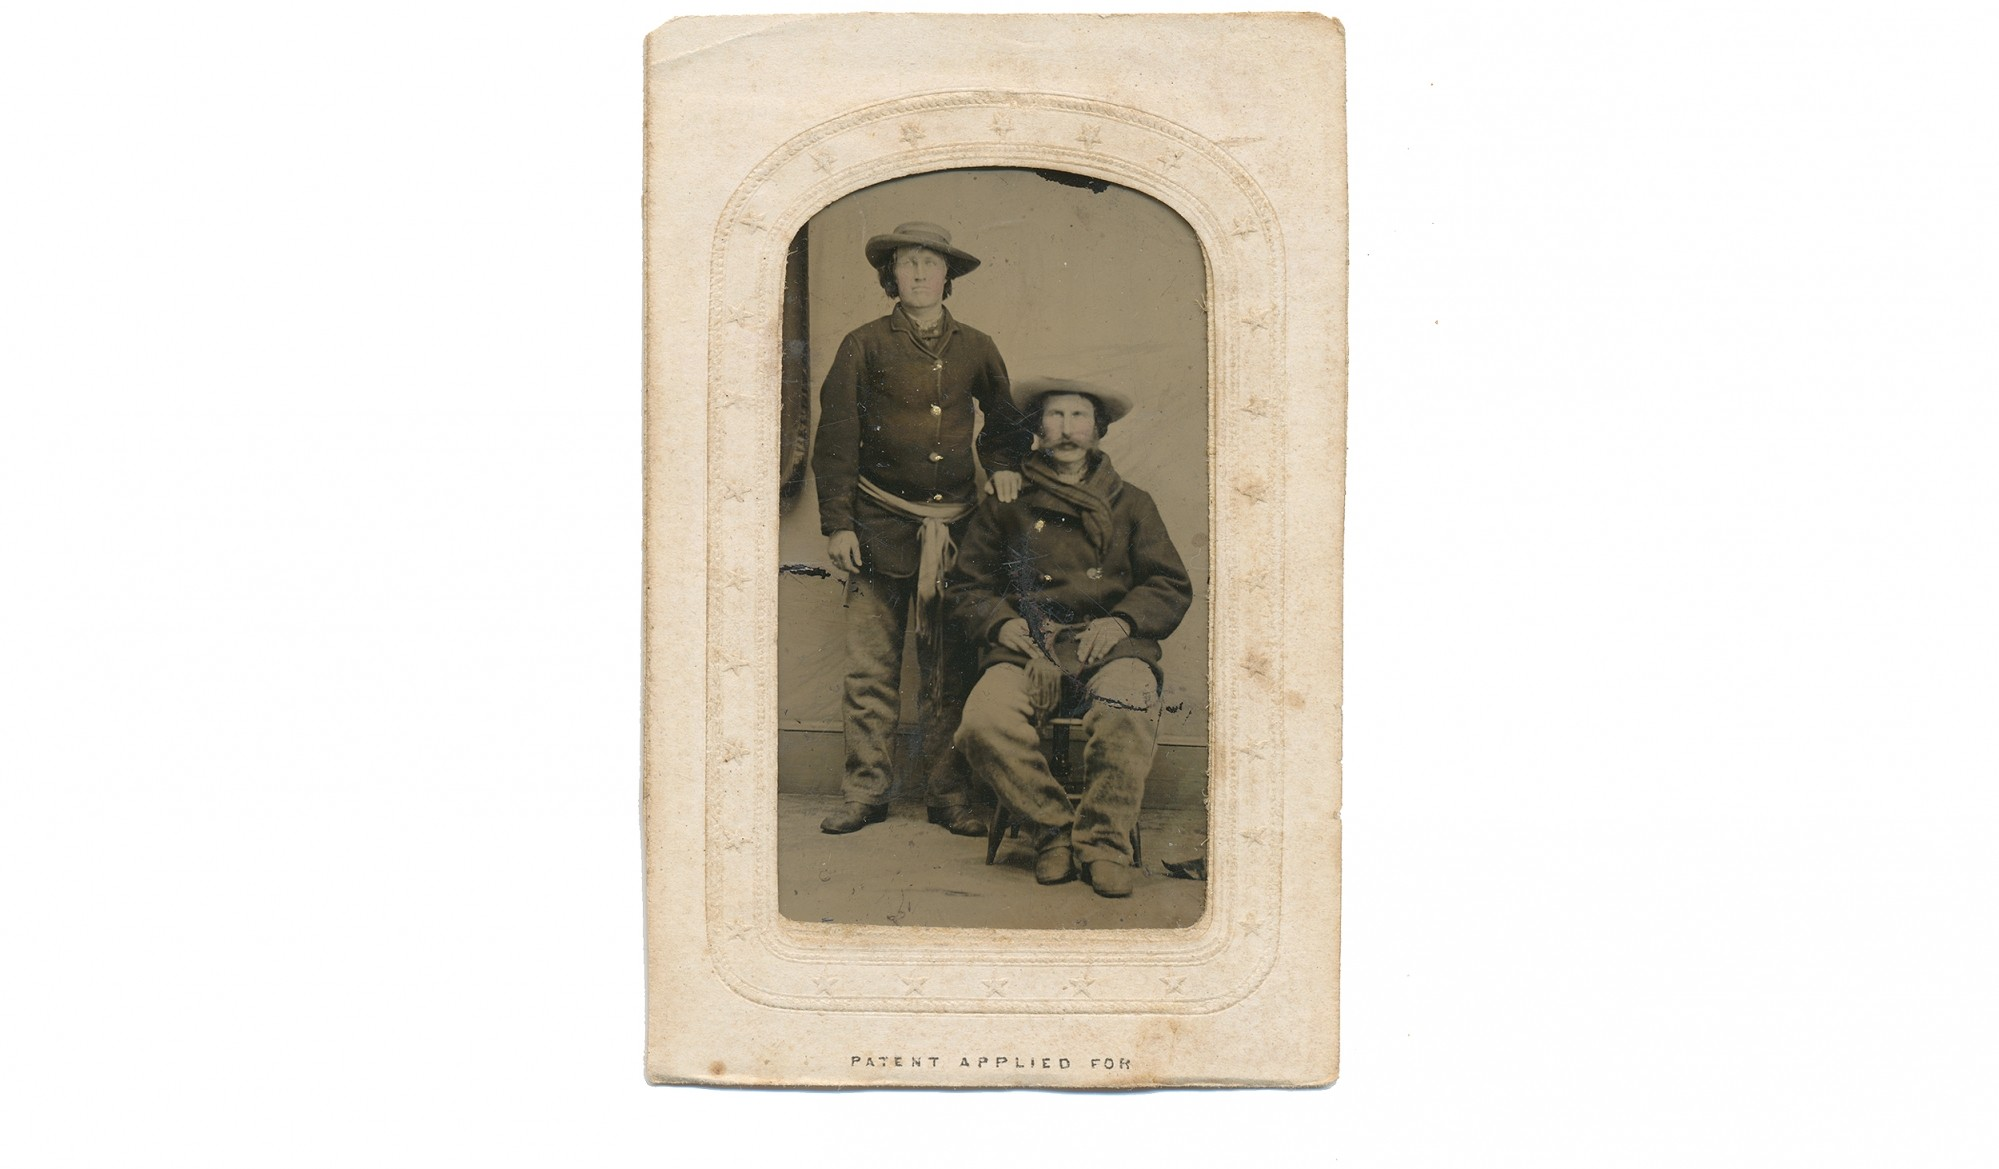 CDV SIZED TINTYPE OF TWO ROUGH LOOKING SOLDIERS